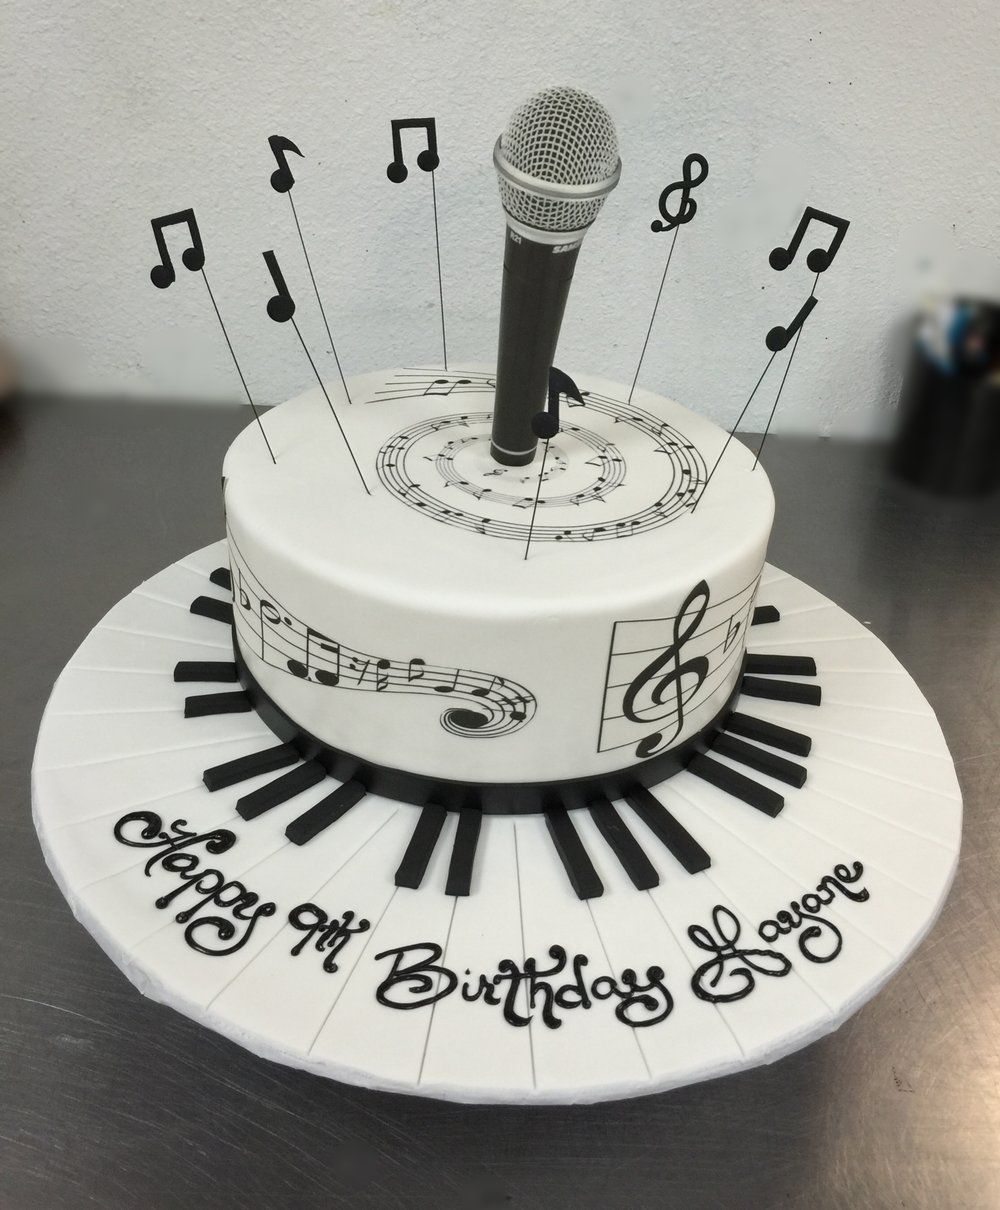 Music Themed Cake Birthday Cakes Pinterest Music themed cakes